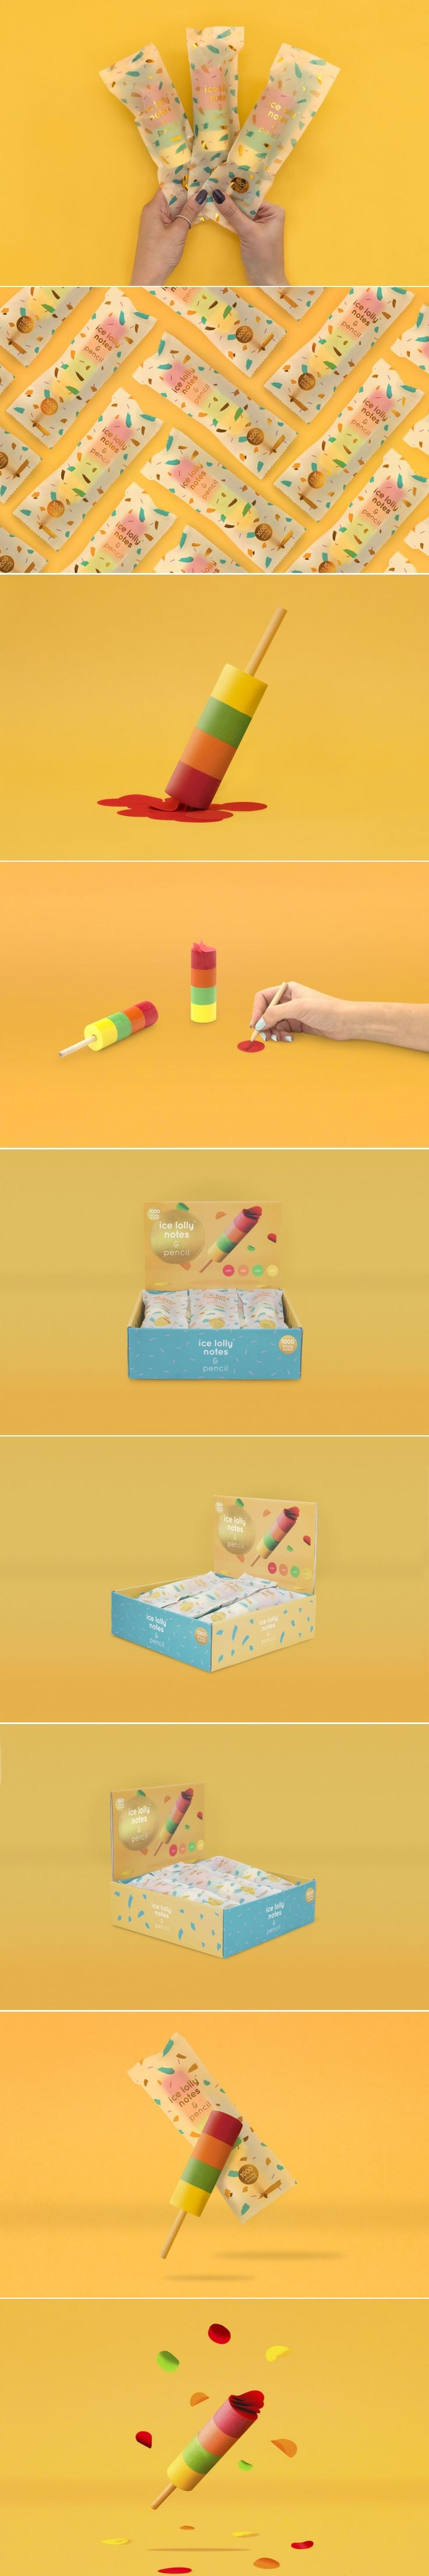 Ice Lolly Notes Are the Adorable Sticky Notes You Need In Your Life — The Dieline | Packaging & Branding Design & Innovation News